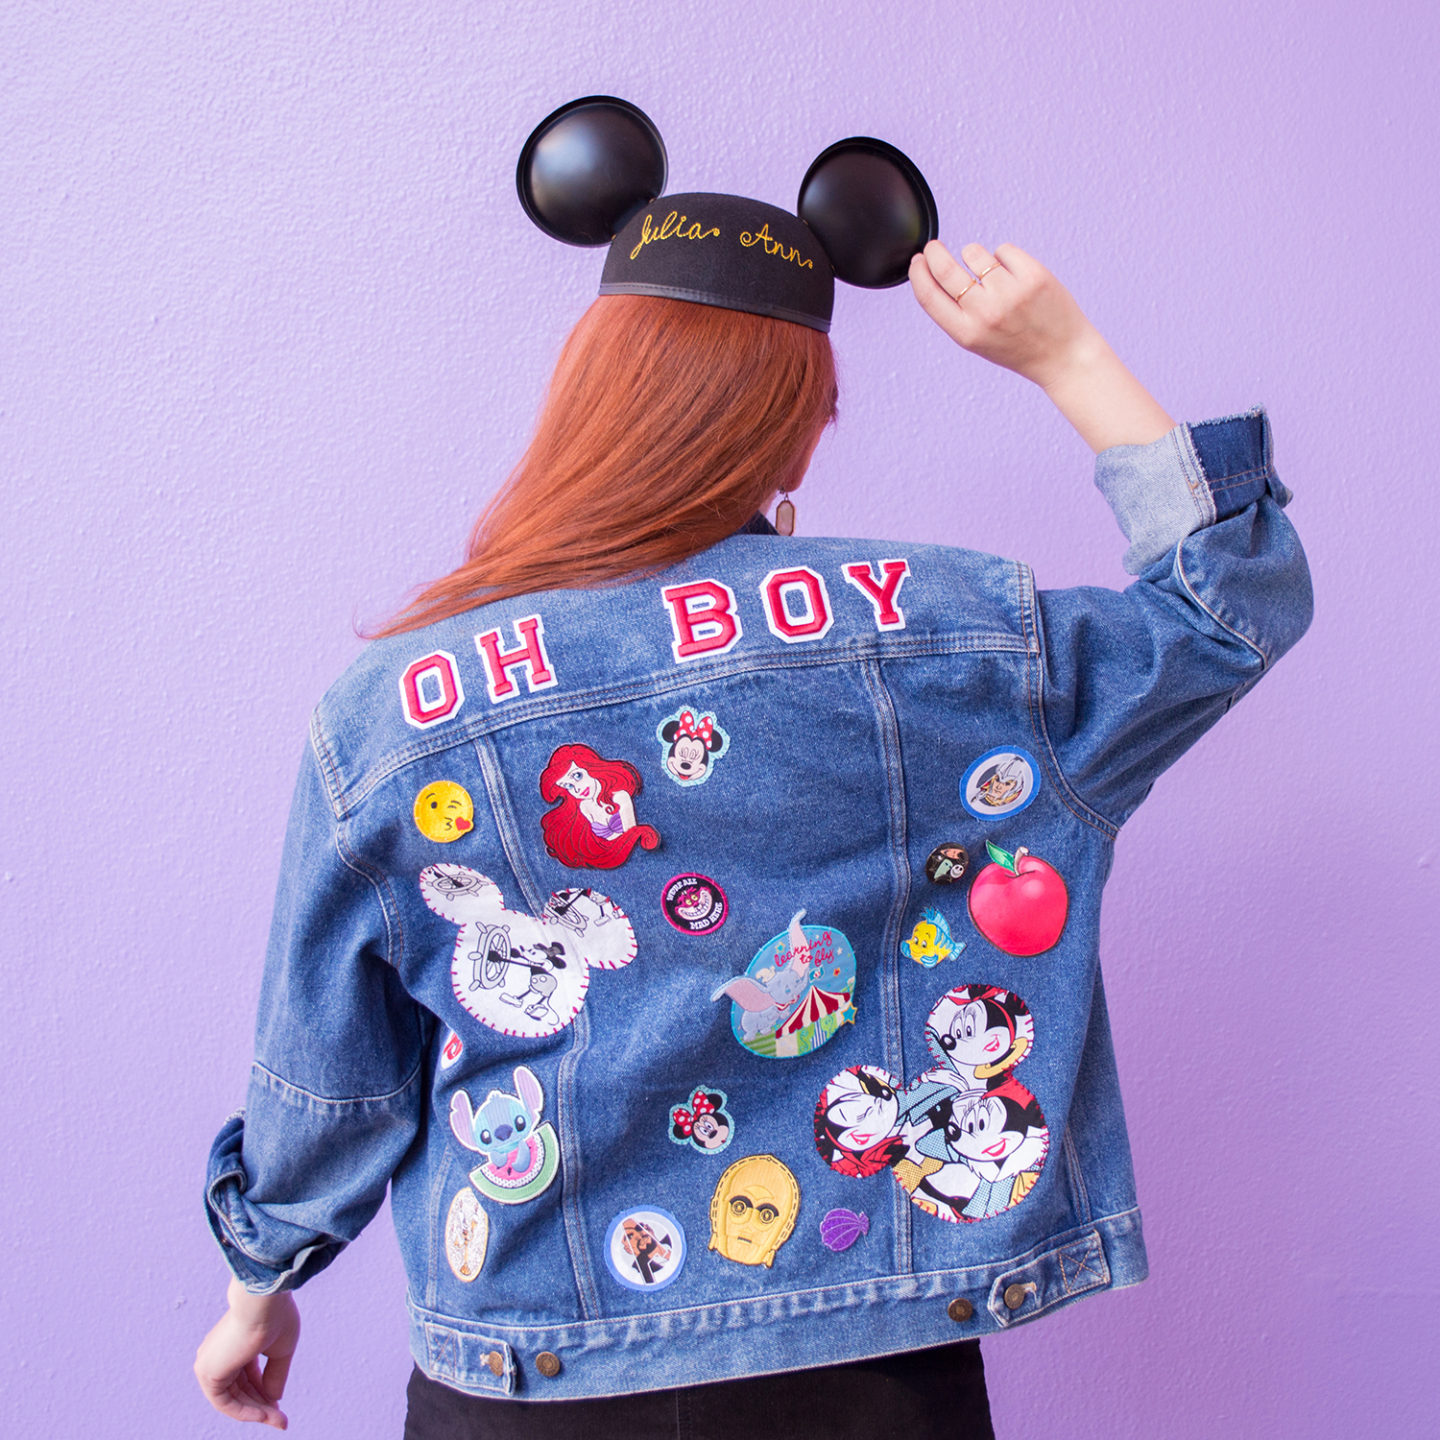 DIY Disney Denim Jacket | Turn Printed Fabric Into Custom Patches